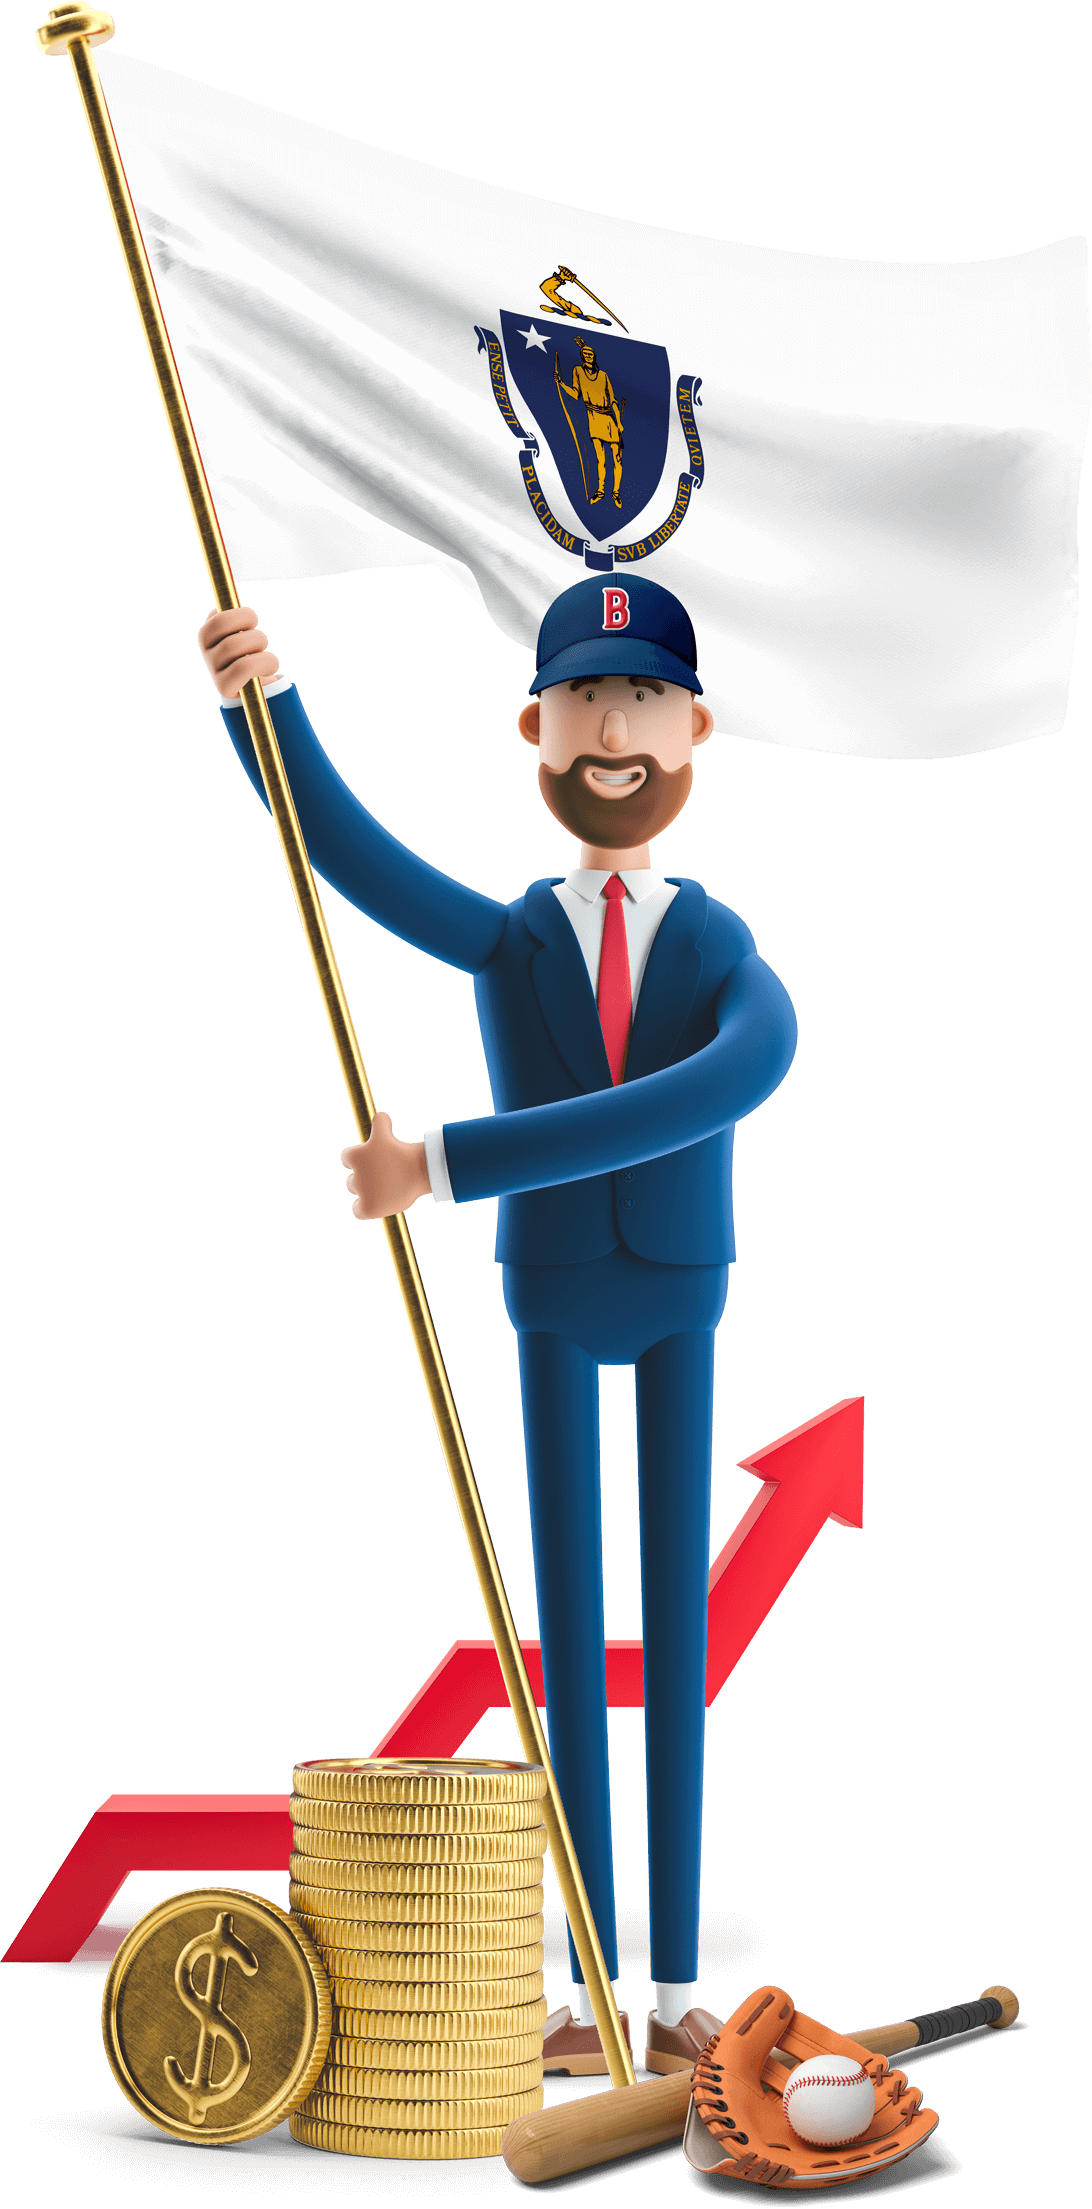 Massachusetts flag held by MetCredit USA businessman who's wearing a baseball cap and has a bat, glove and ball at this feet